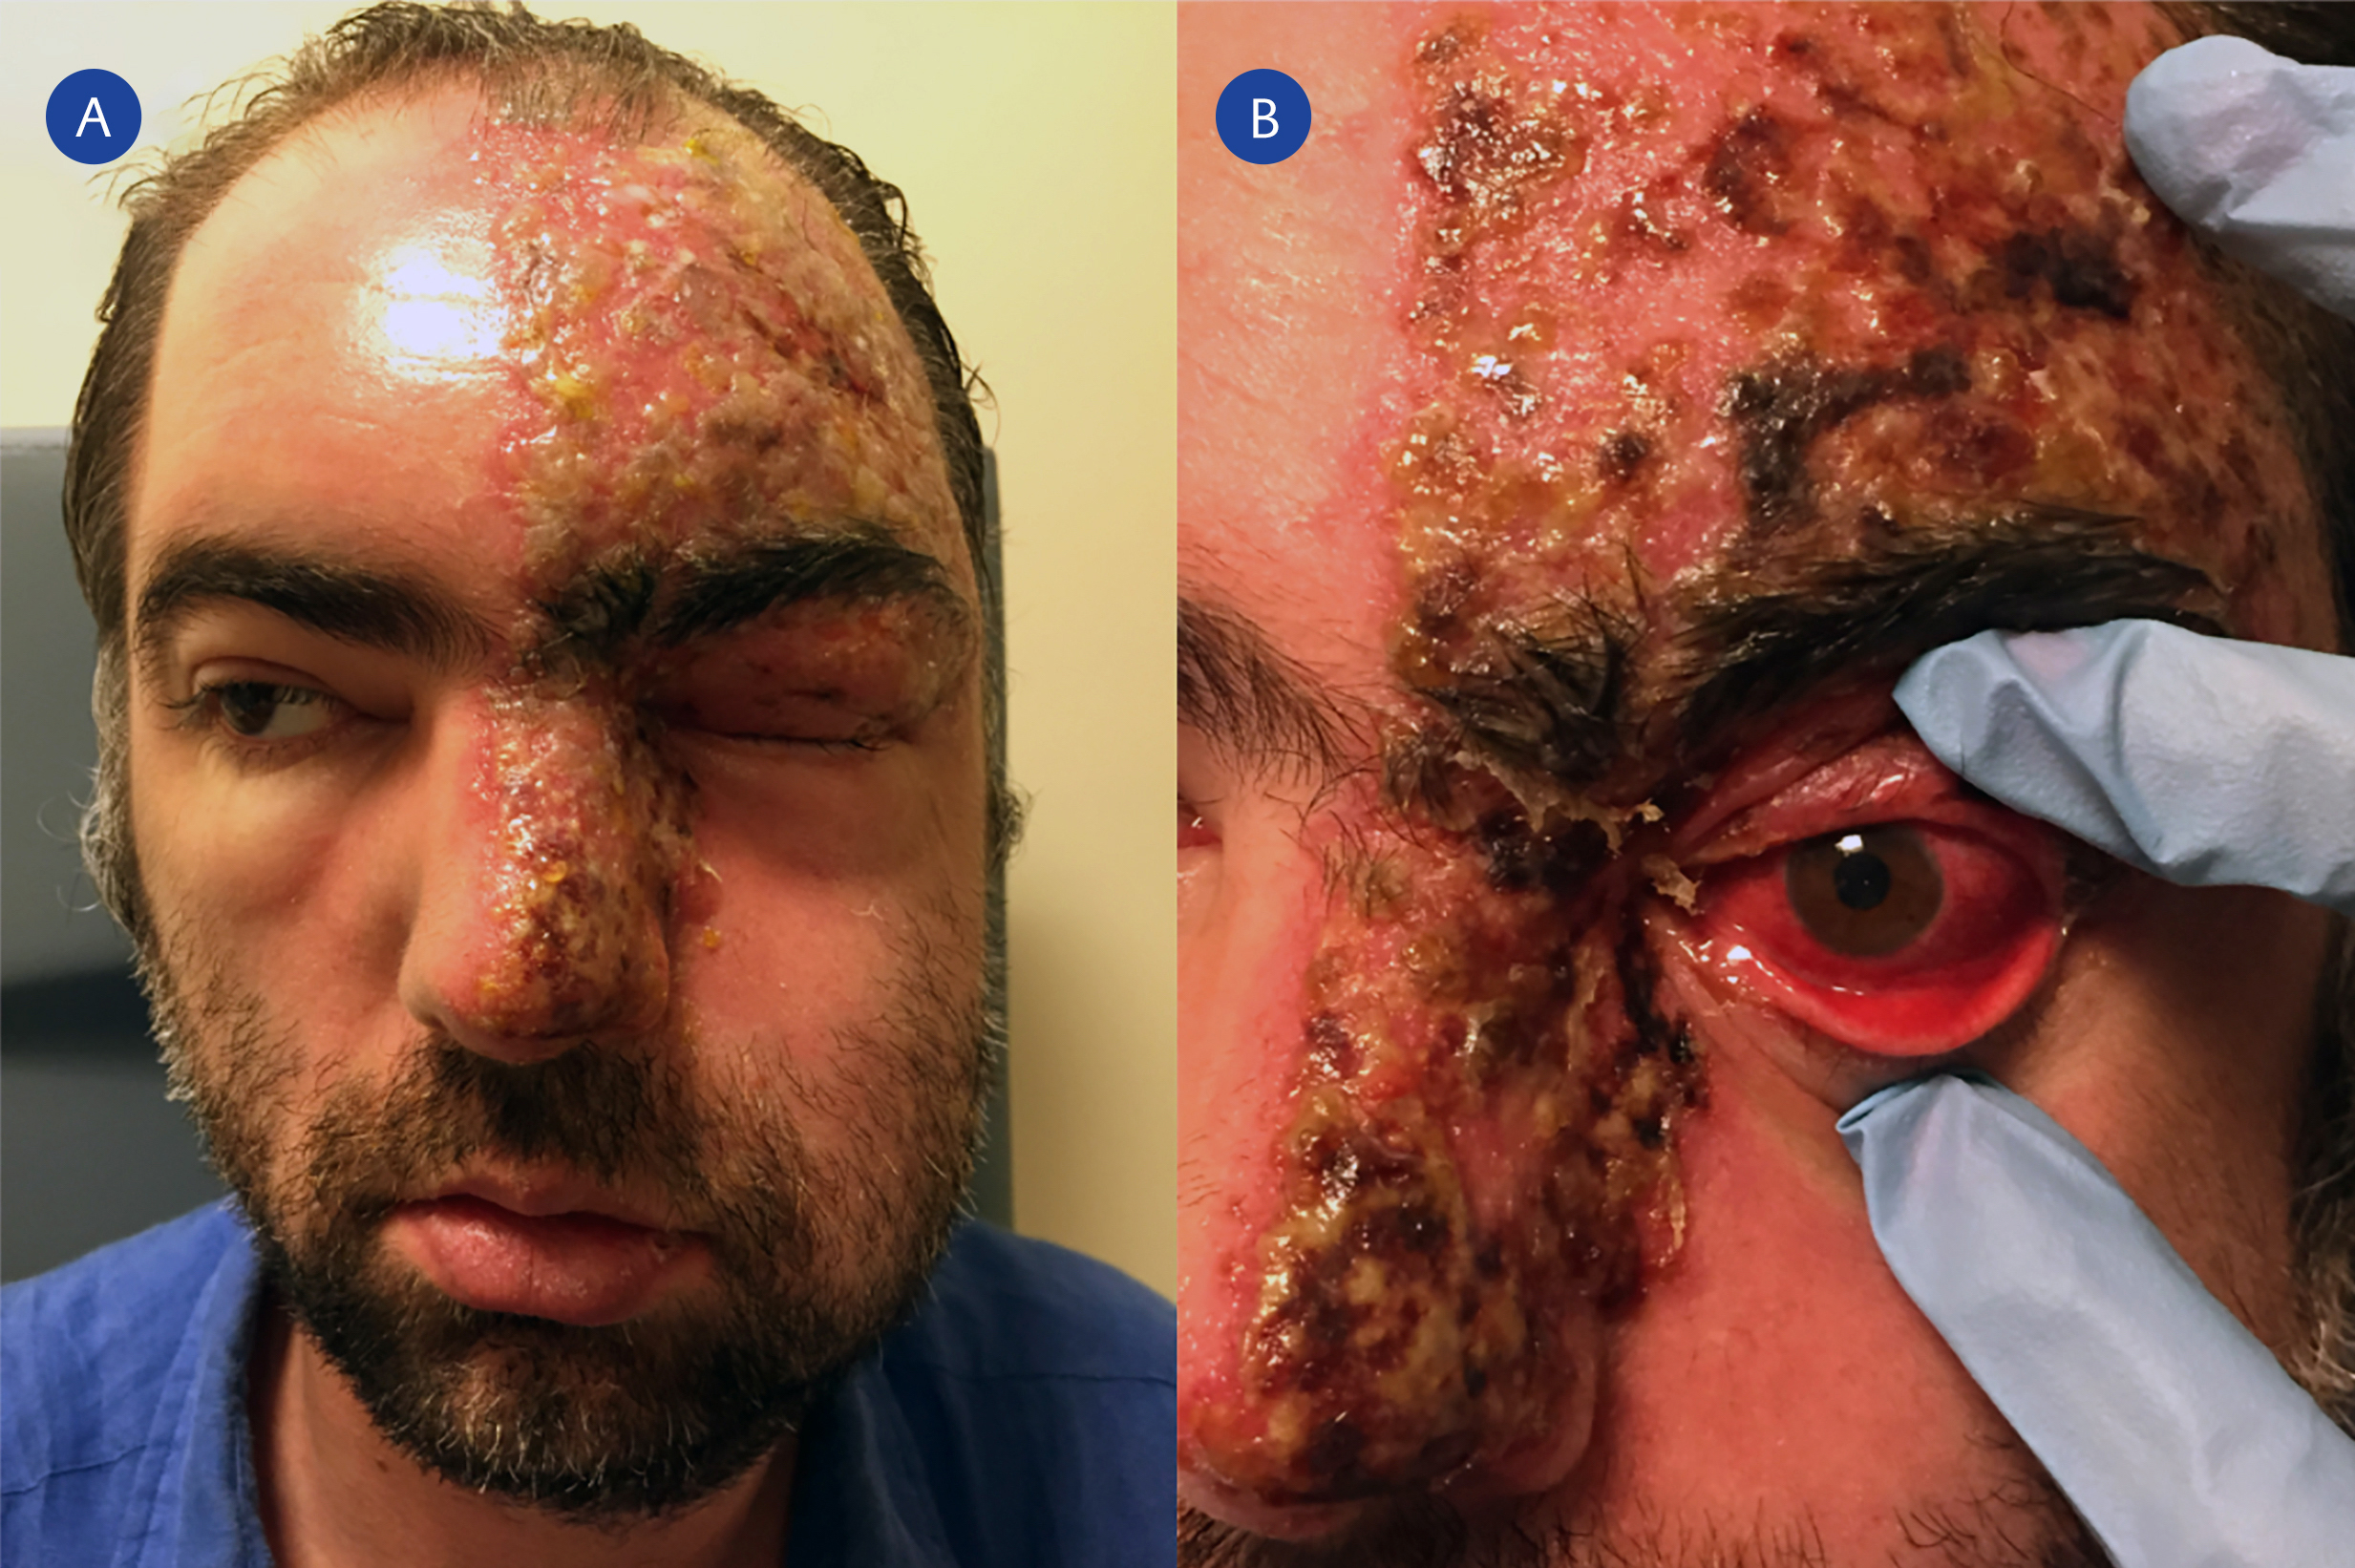 <b>Figure 1.</b> Facial photograph of the patient at presentation shows severe facial edema and drooping and vesiculopustular lesions on frontal and scalp skin, upper eyelid, medial canthus, and root, side and tip of nose on the left side of his face (A). Lesions do not cross the midline. Crusting of the vesicular skin lesions and severe diffuse anterior scleritis is seen in the left eye 2 days after treatment (B).